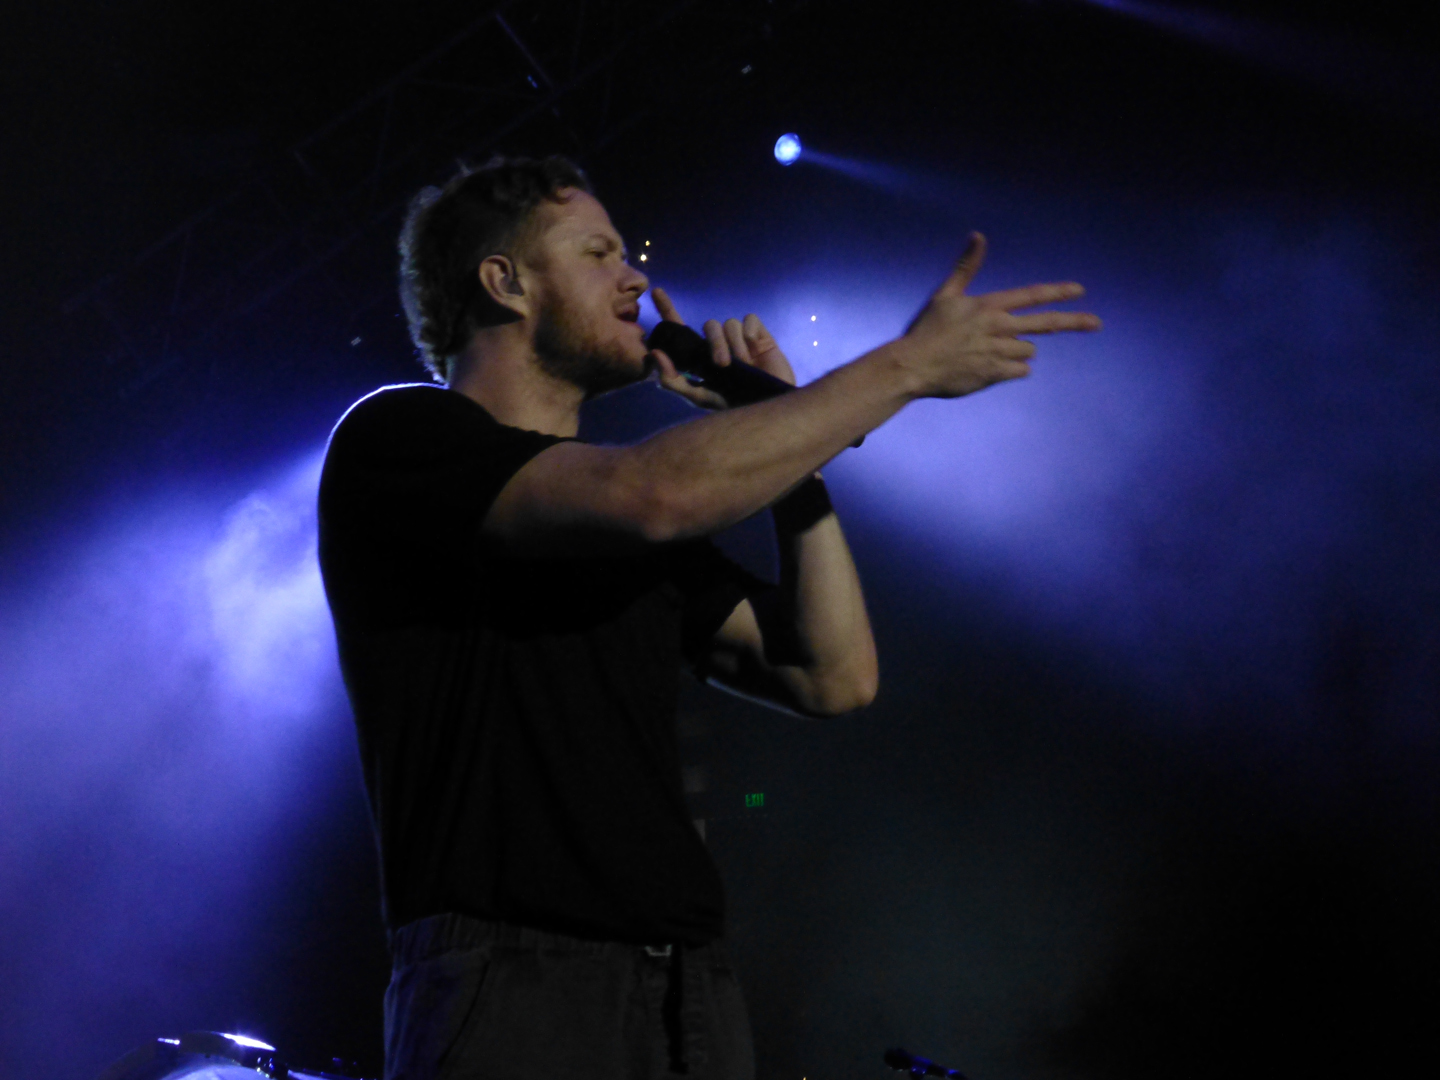 Photos and videos: Live 105 Not So Silent Night, Dec. 13, 2014